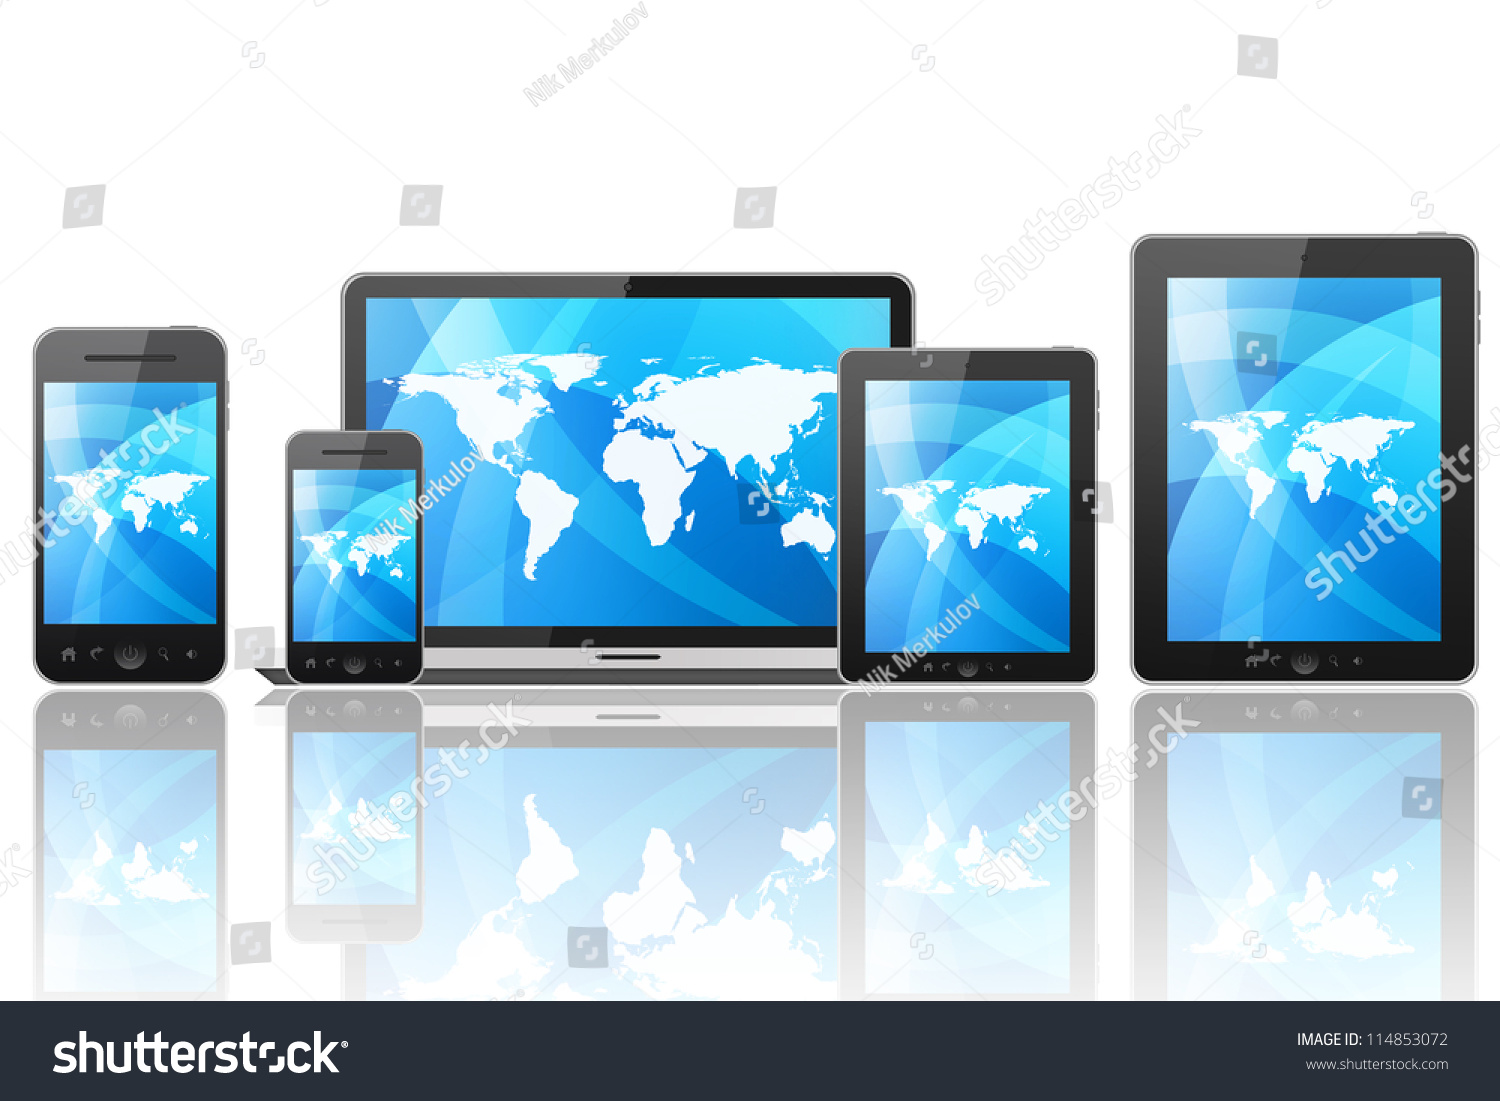 Tablet Pc Mobile Phone Different Digital Stock Illustration ...